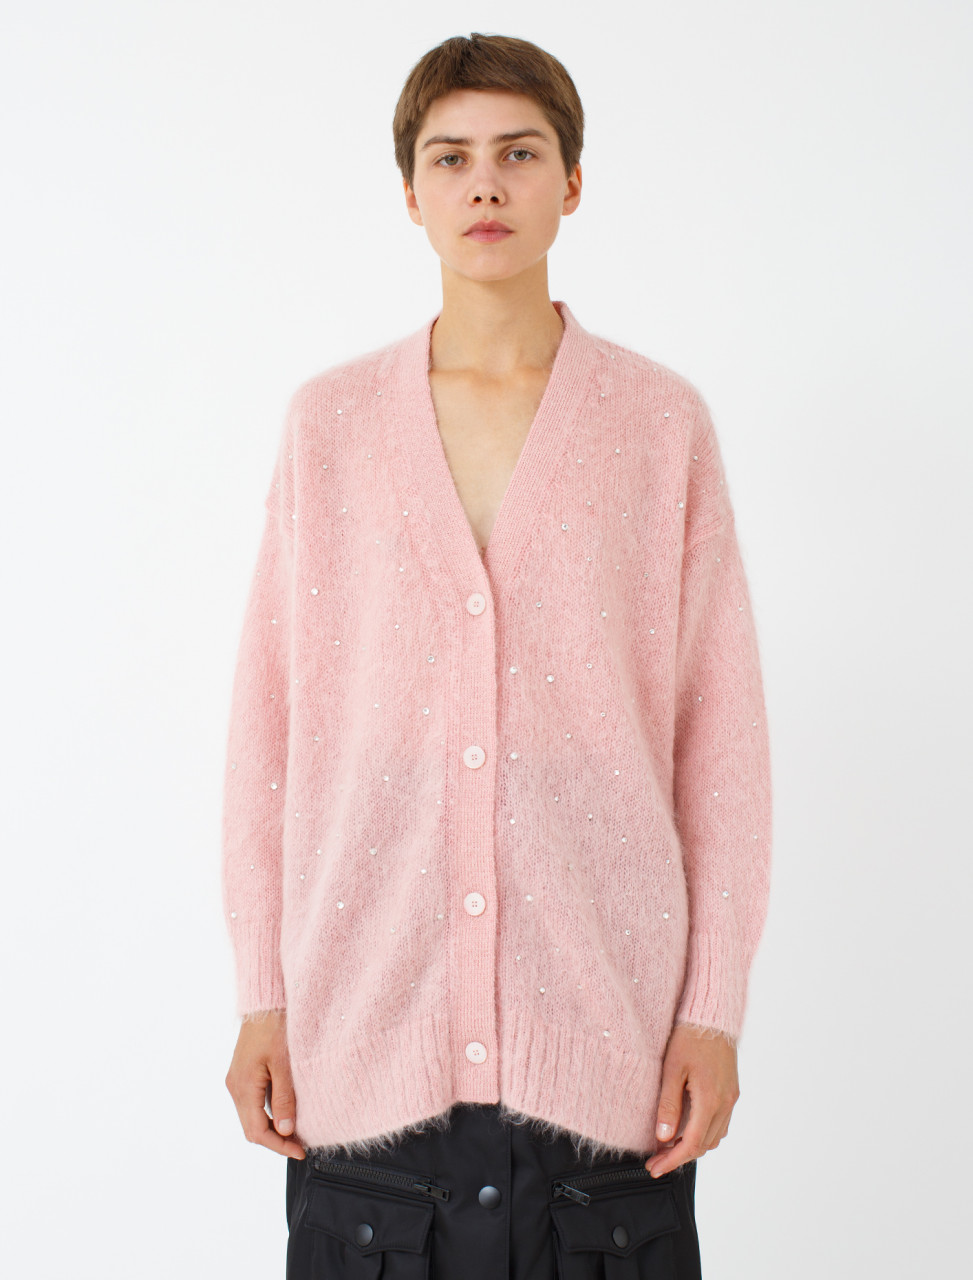 Embellished Mohair Cardigan